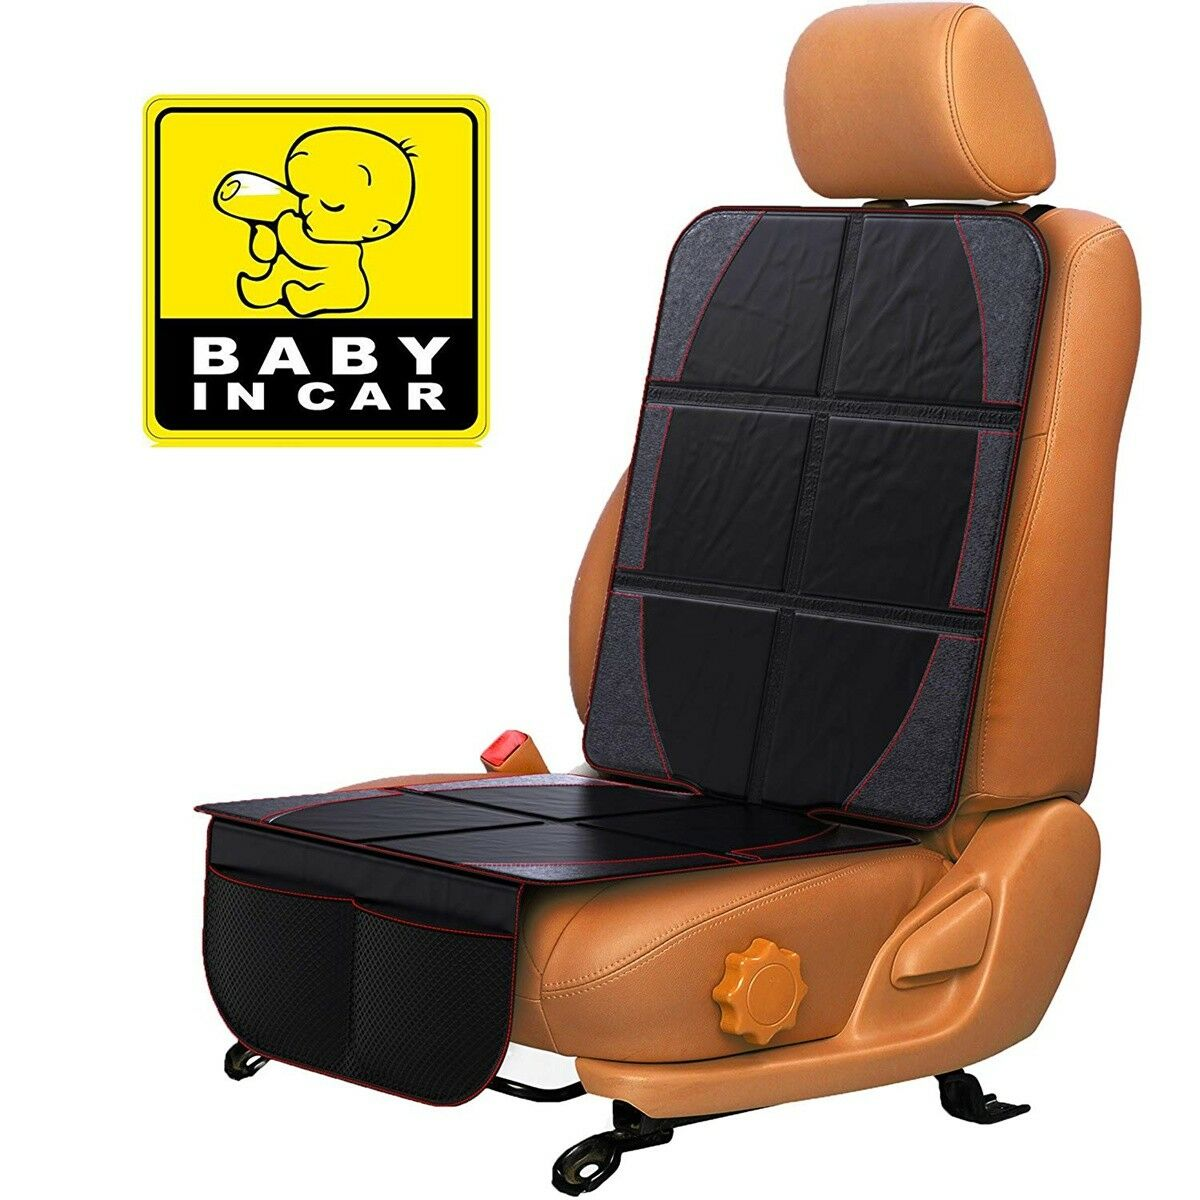 Car Seat Protectors for Child Seats-Protects Upholstery from